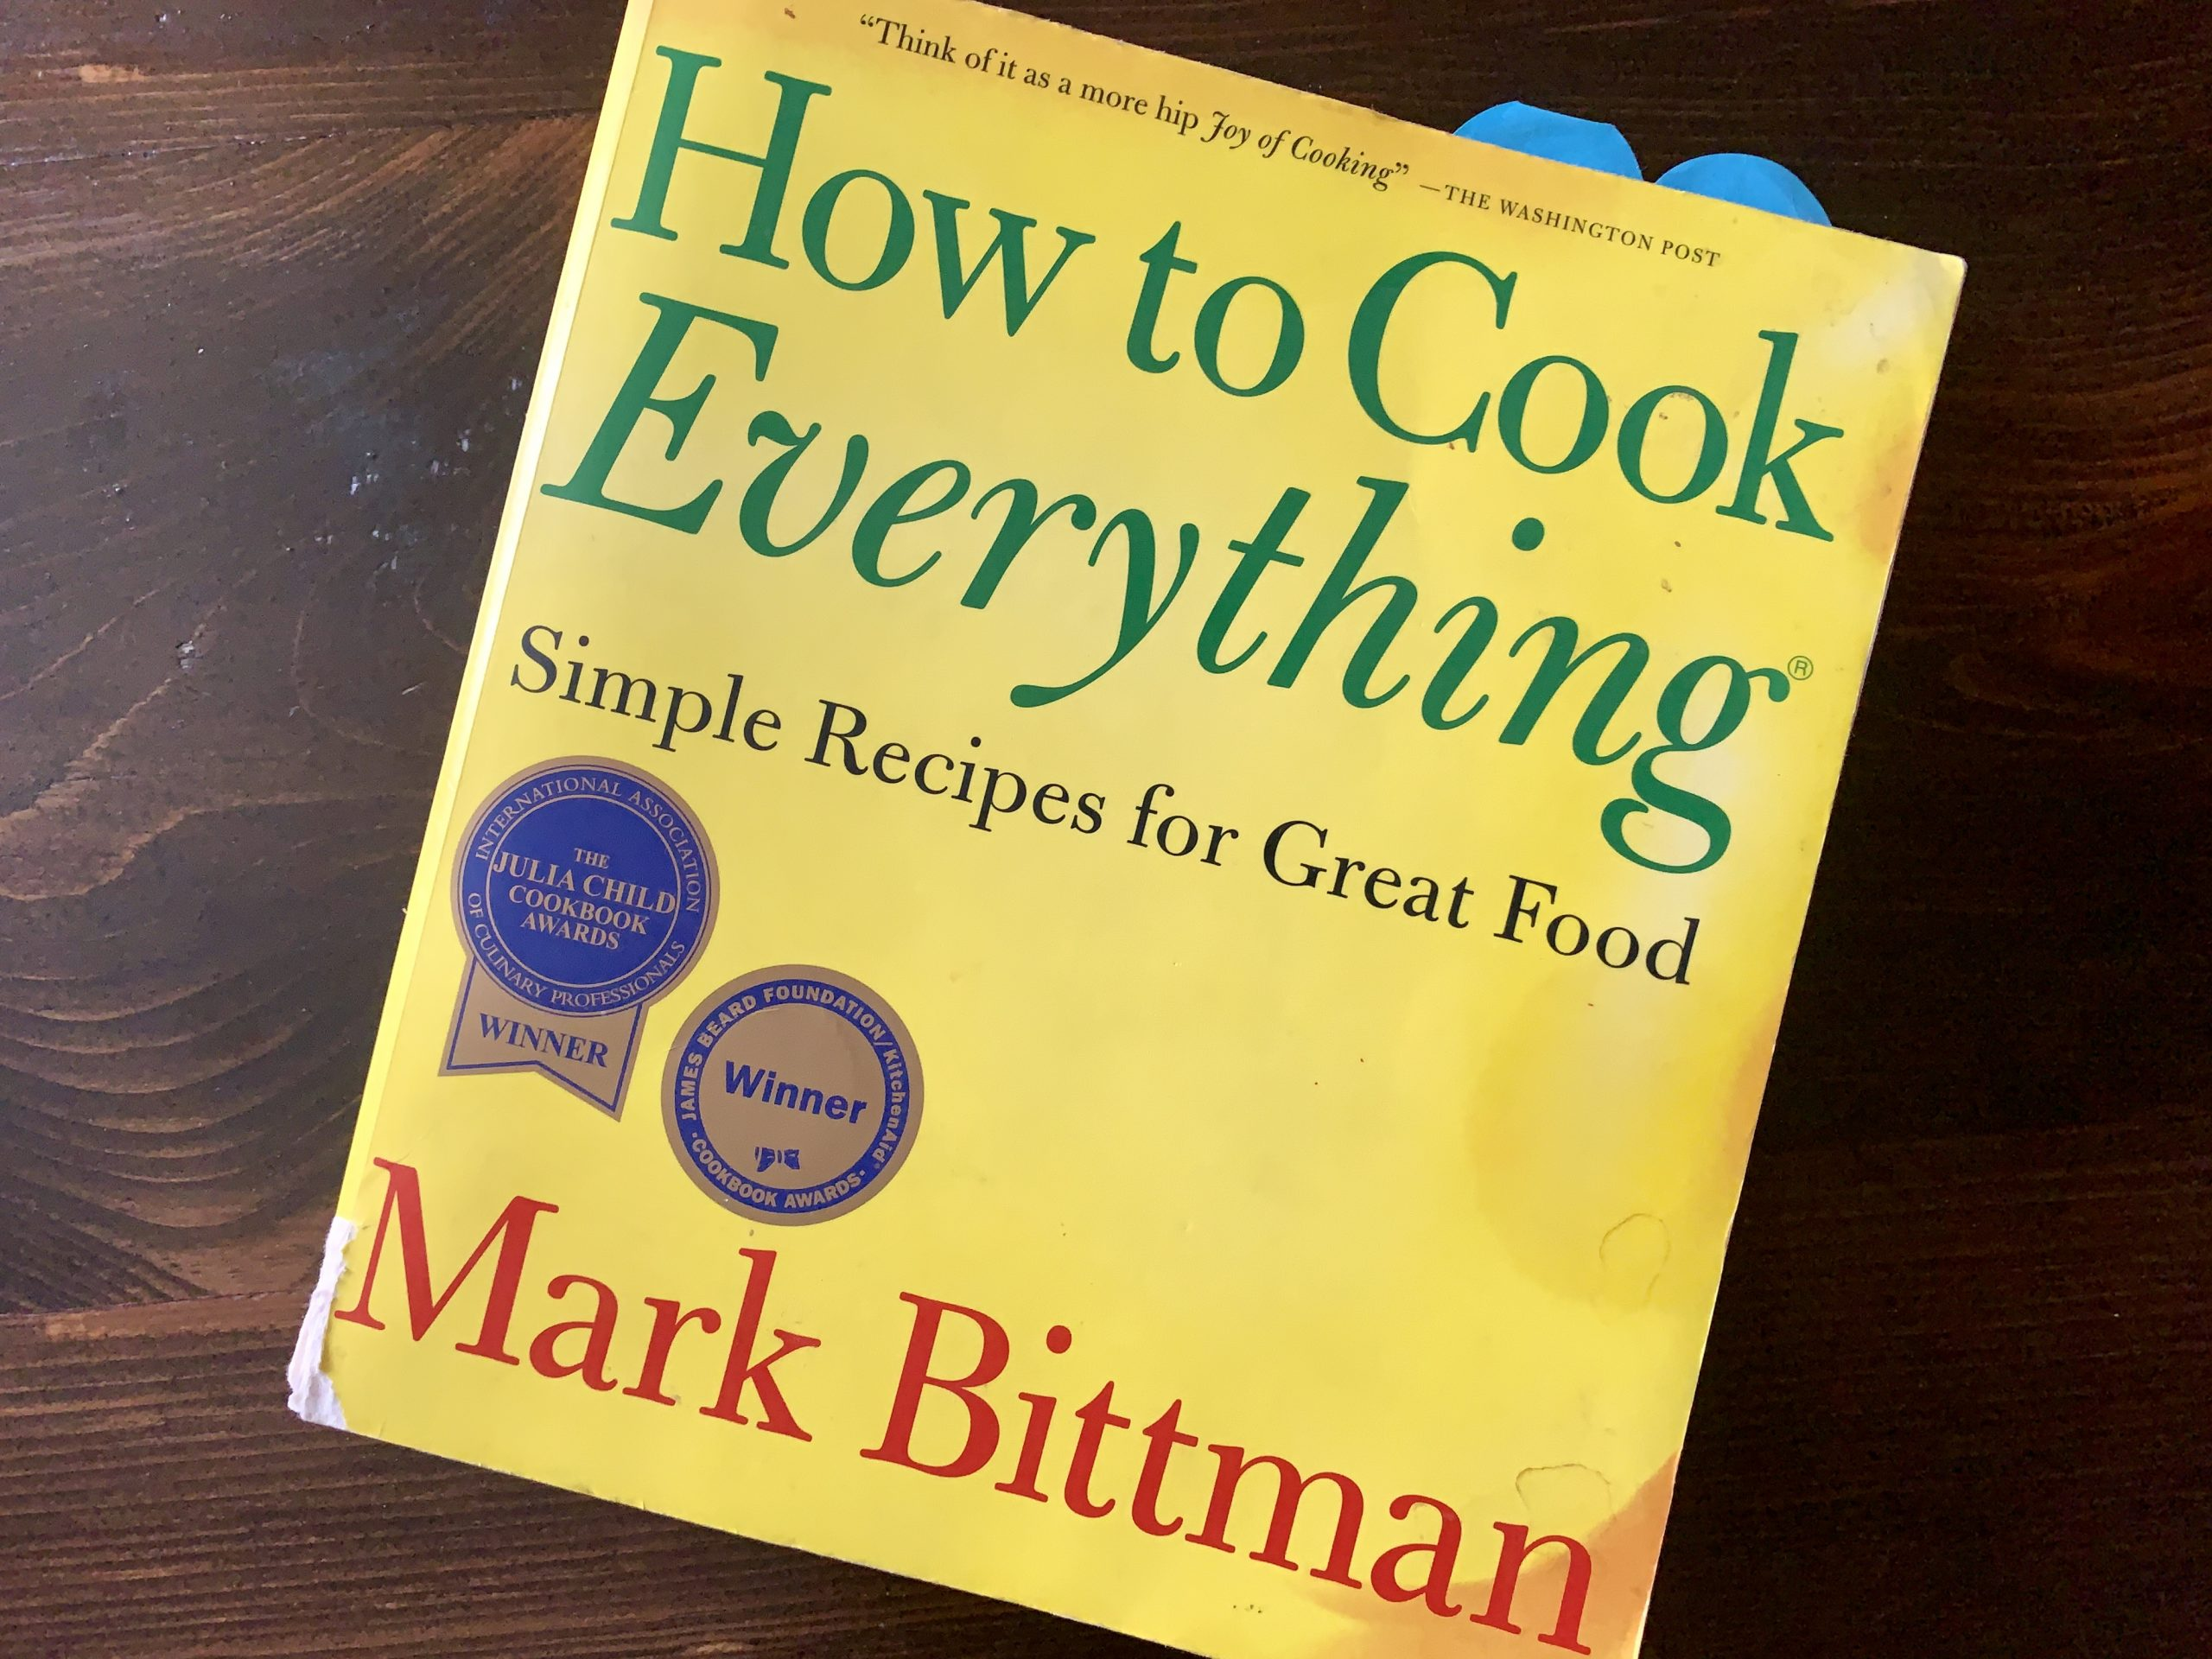 The front cover of a cookbook.